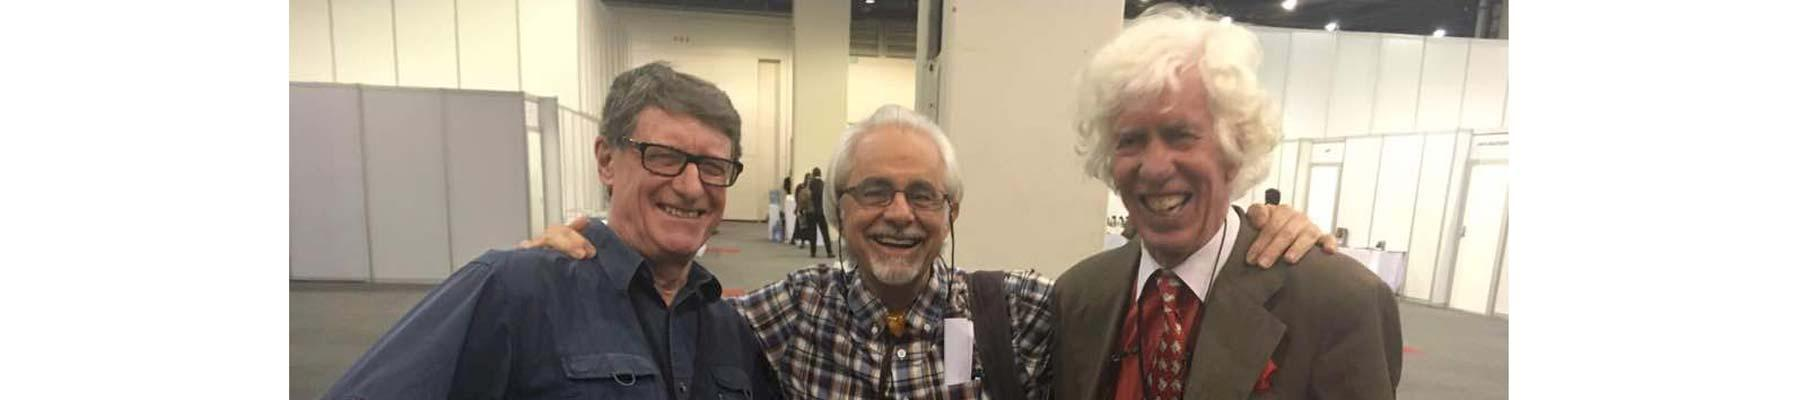 (l to r): Dan Stiles, Tom Milliken and Esmond Bradley Martin, photographed at CITES CoP17 in South Africa, 2016